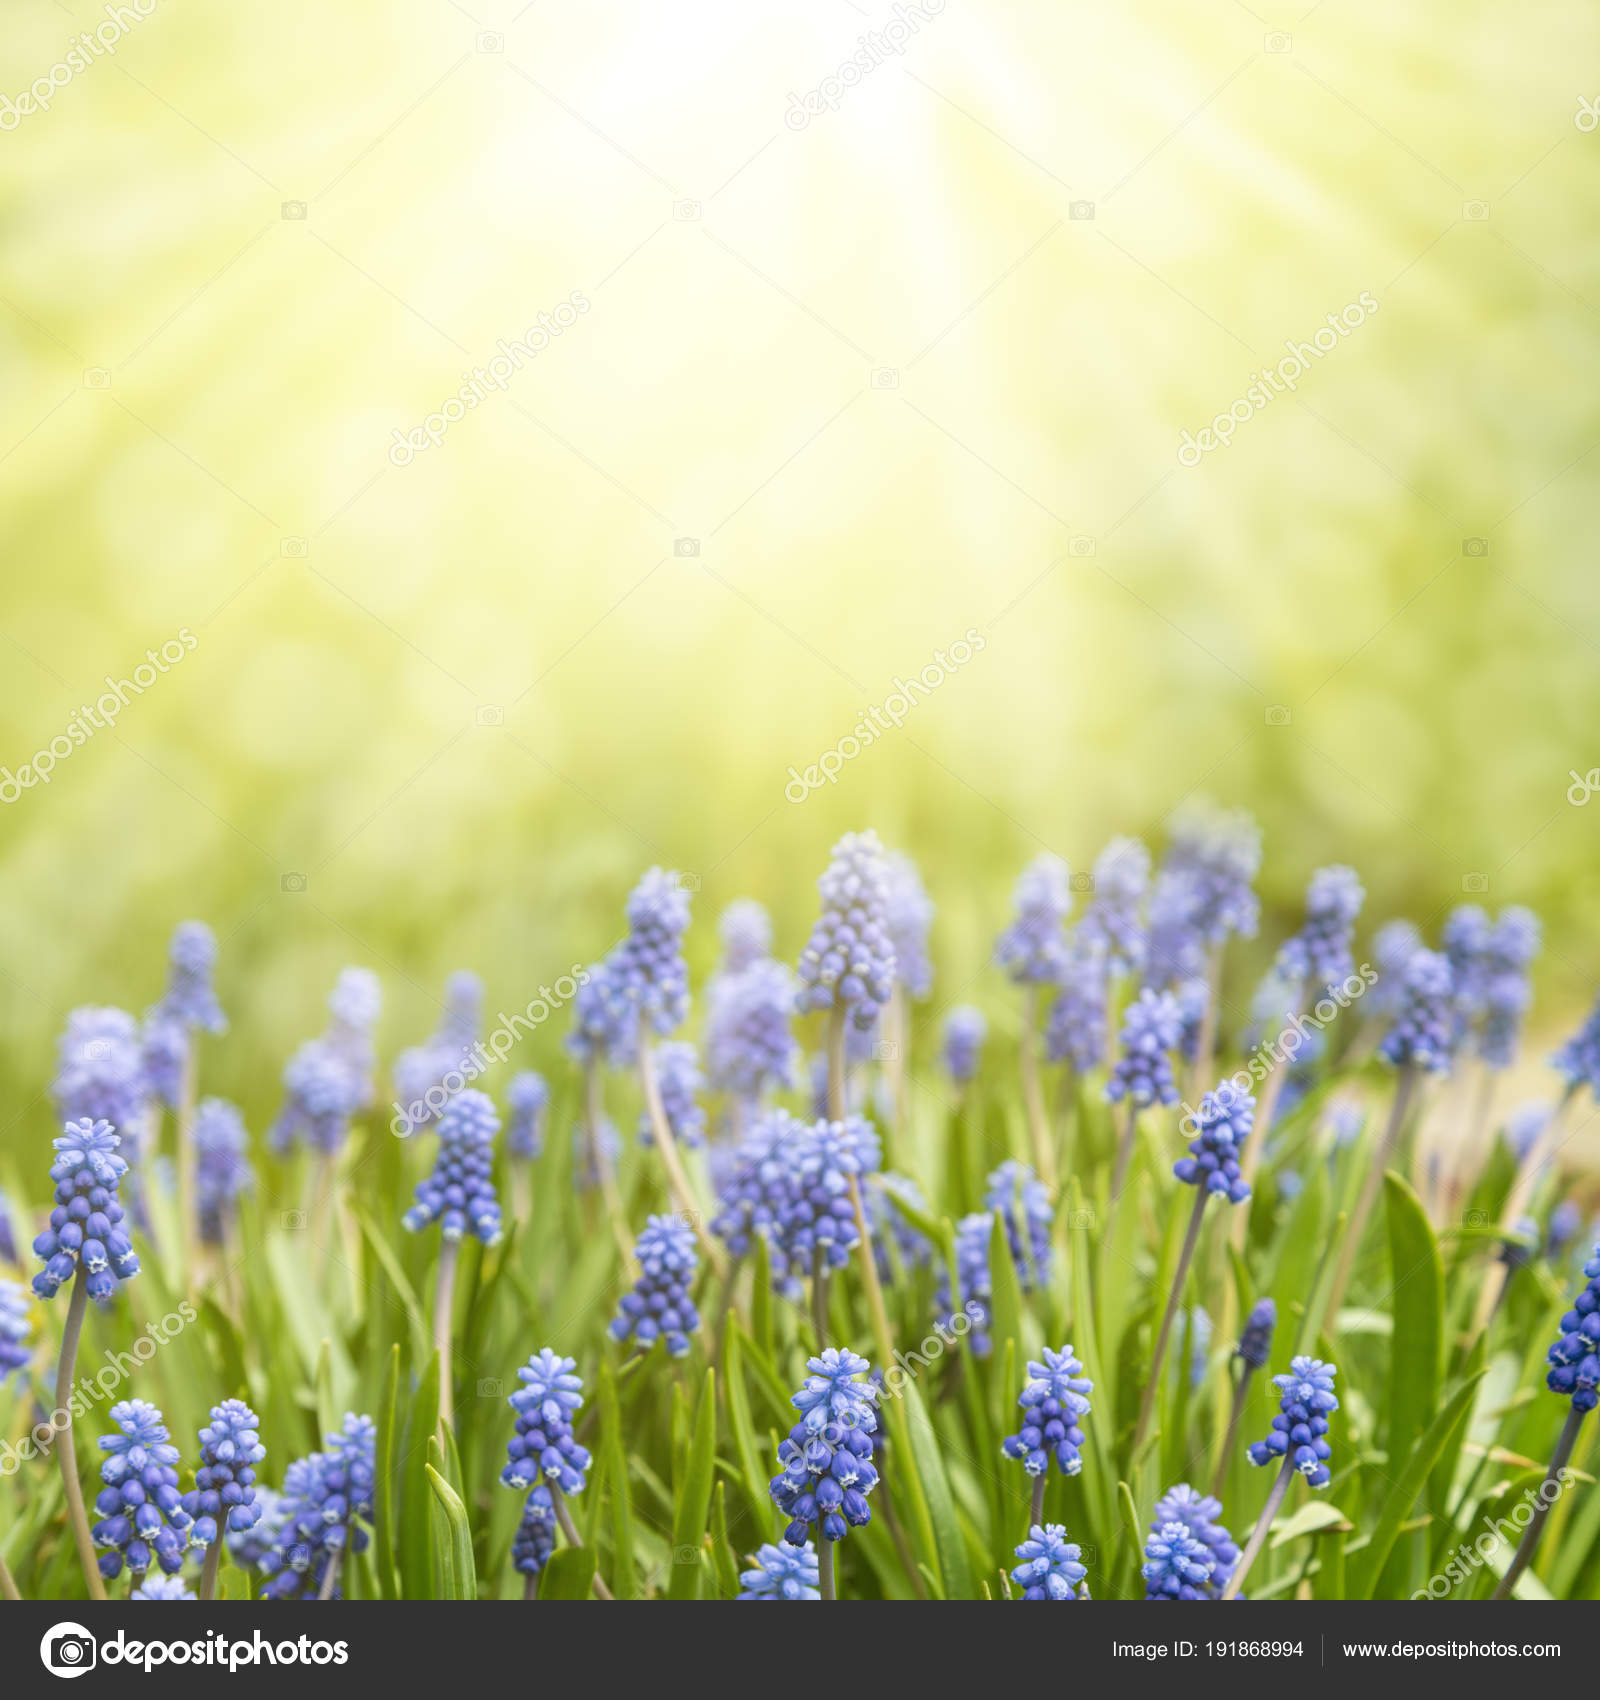 Spring Floral Background Flowers Of Muscari In The Sun Stock